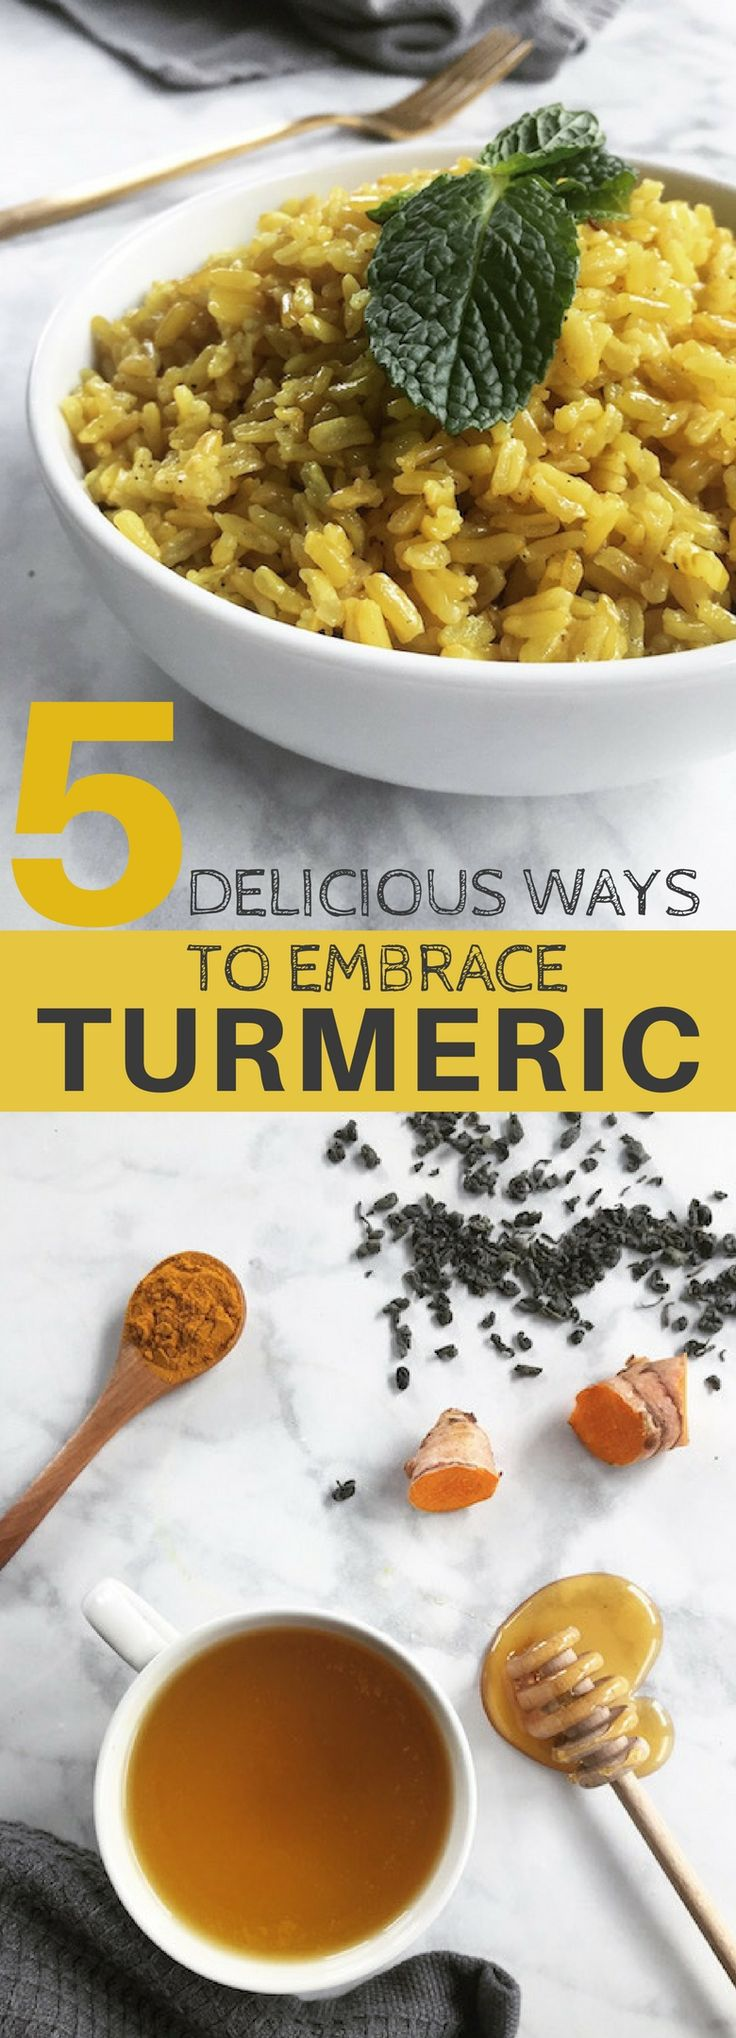 Five simple ways to add a dose of turmeric throughout the day. Turmeric can be found in many health stores today, either grounded or raw. It's important to purchase high-quality organic turmeric that is free from pesticides and other harmful ingredients. Since turmeric is so powerful, a small amount goes a long way.